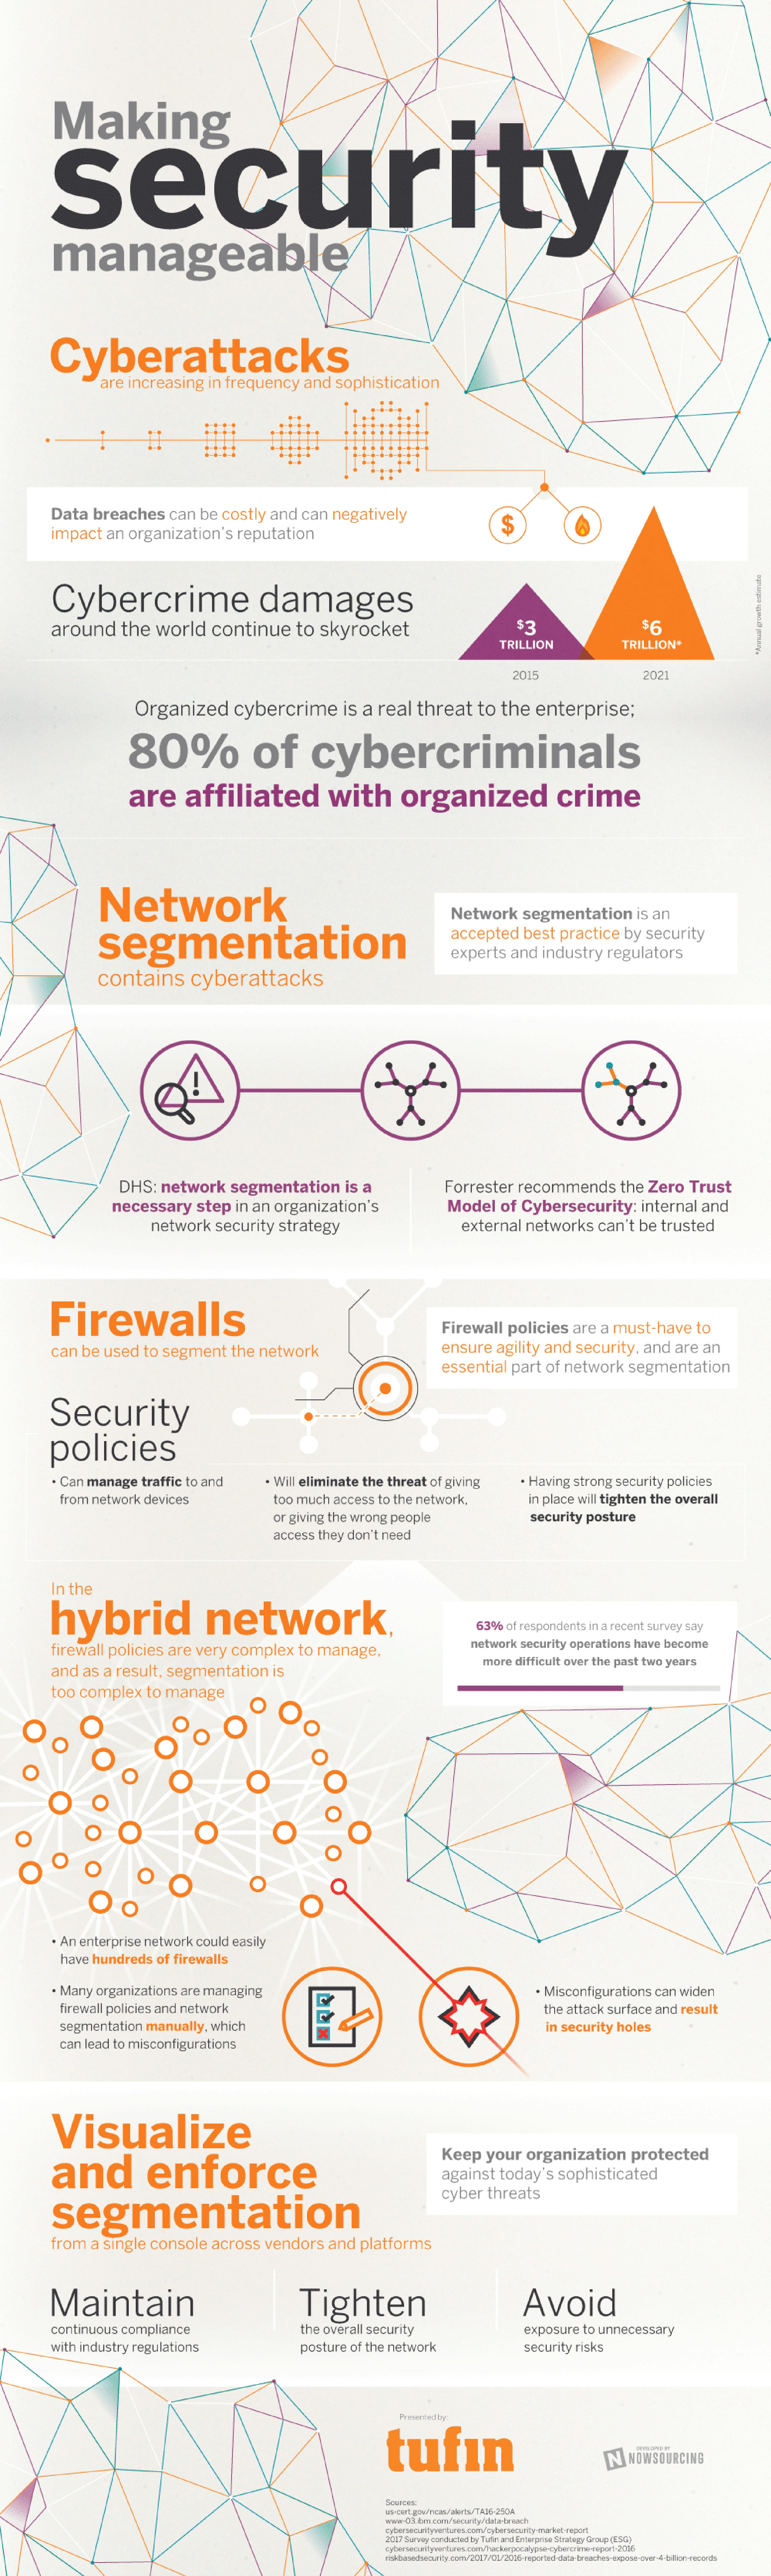 Using Network Segmentation For Security - Infographic